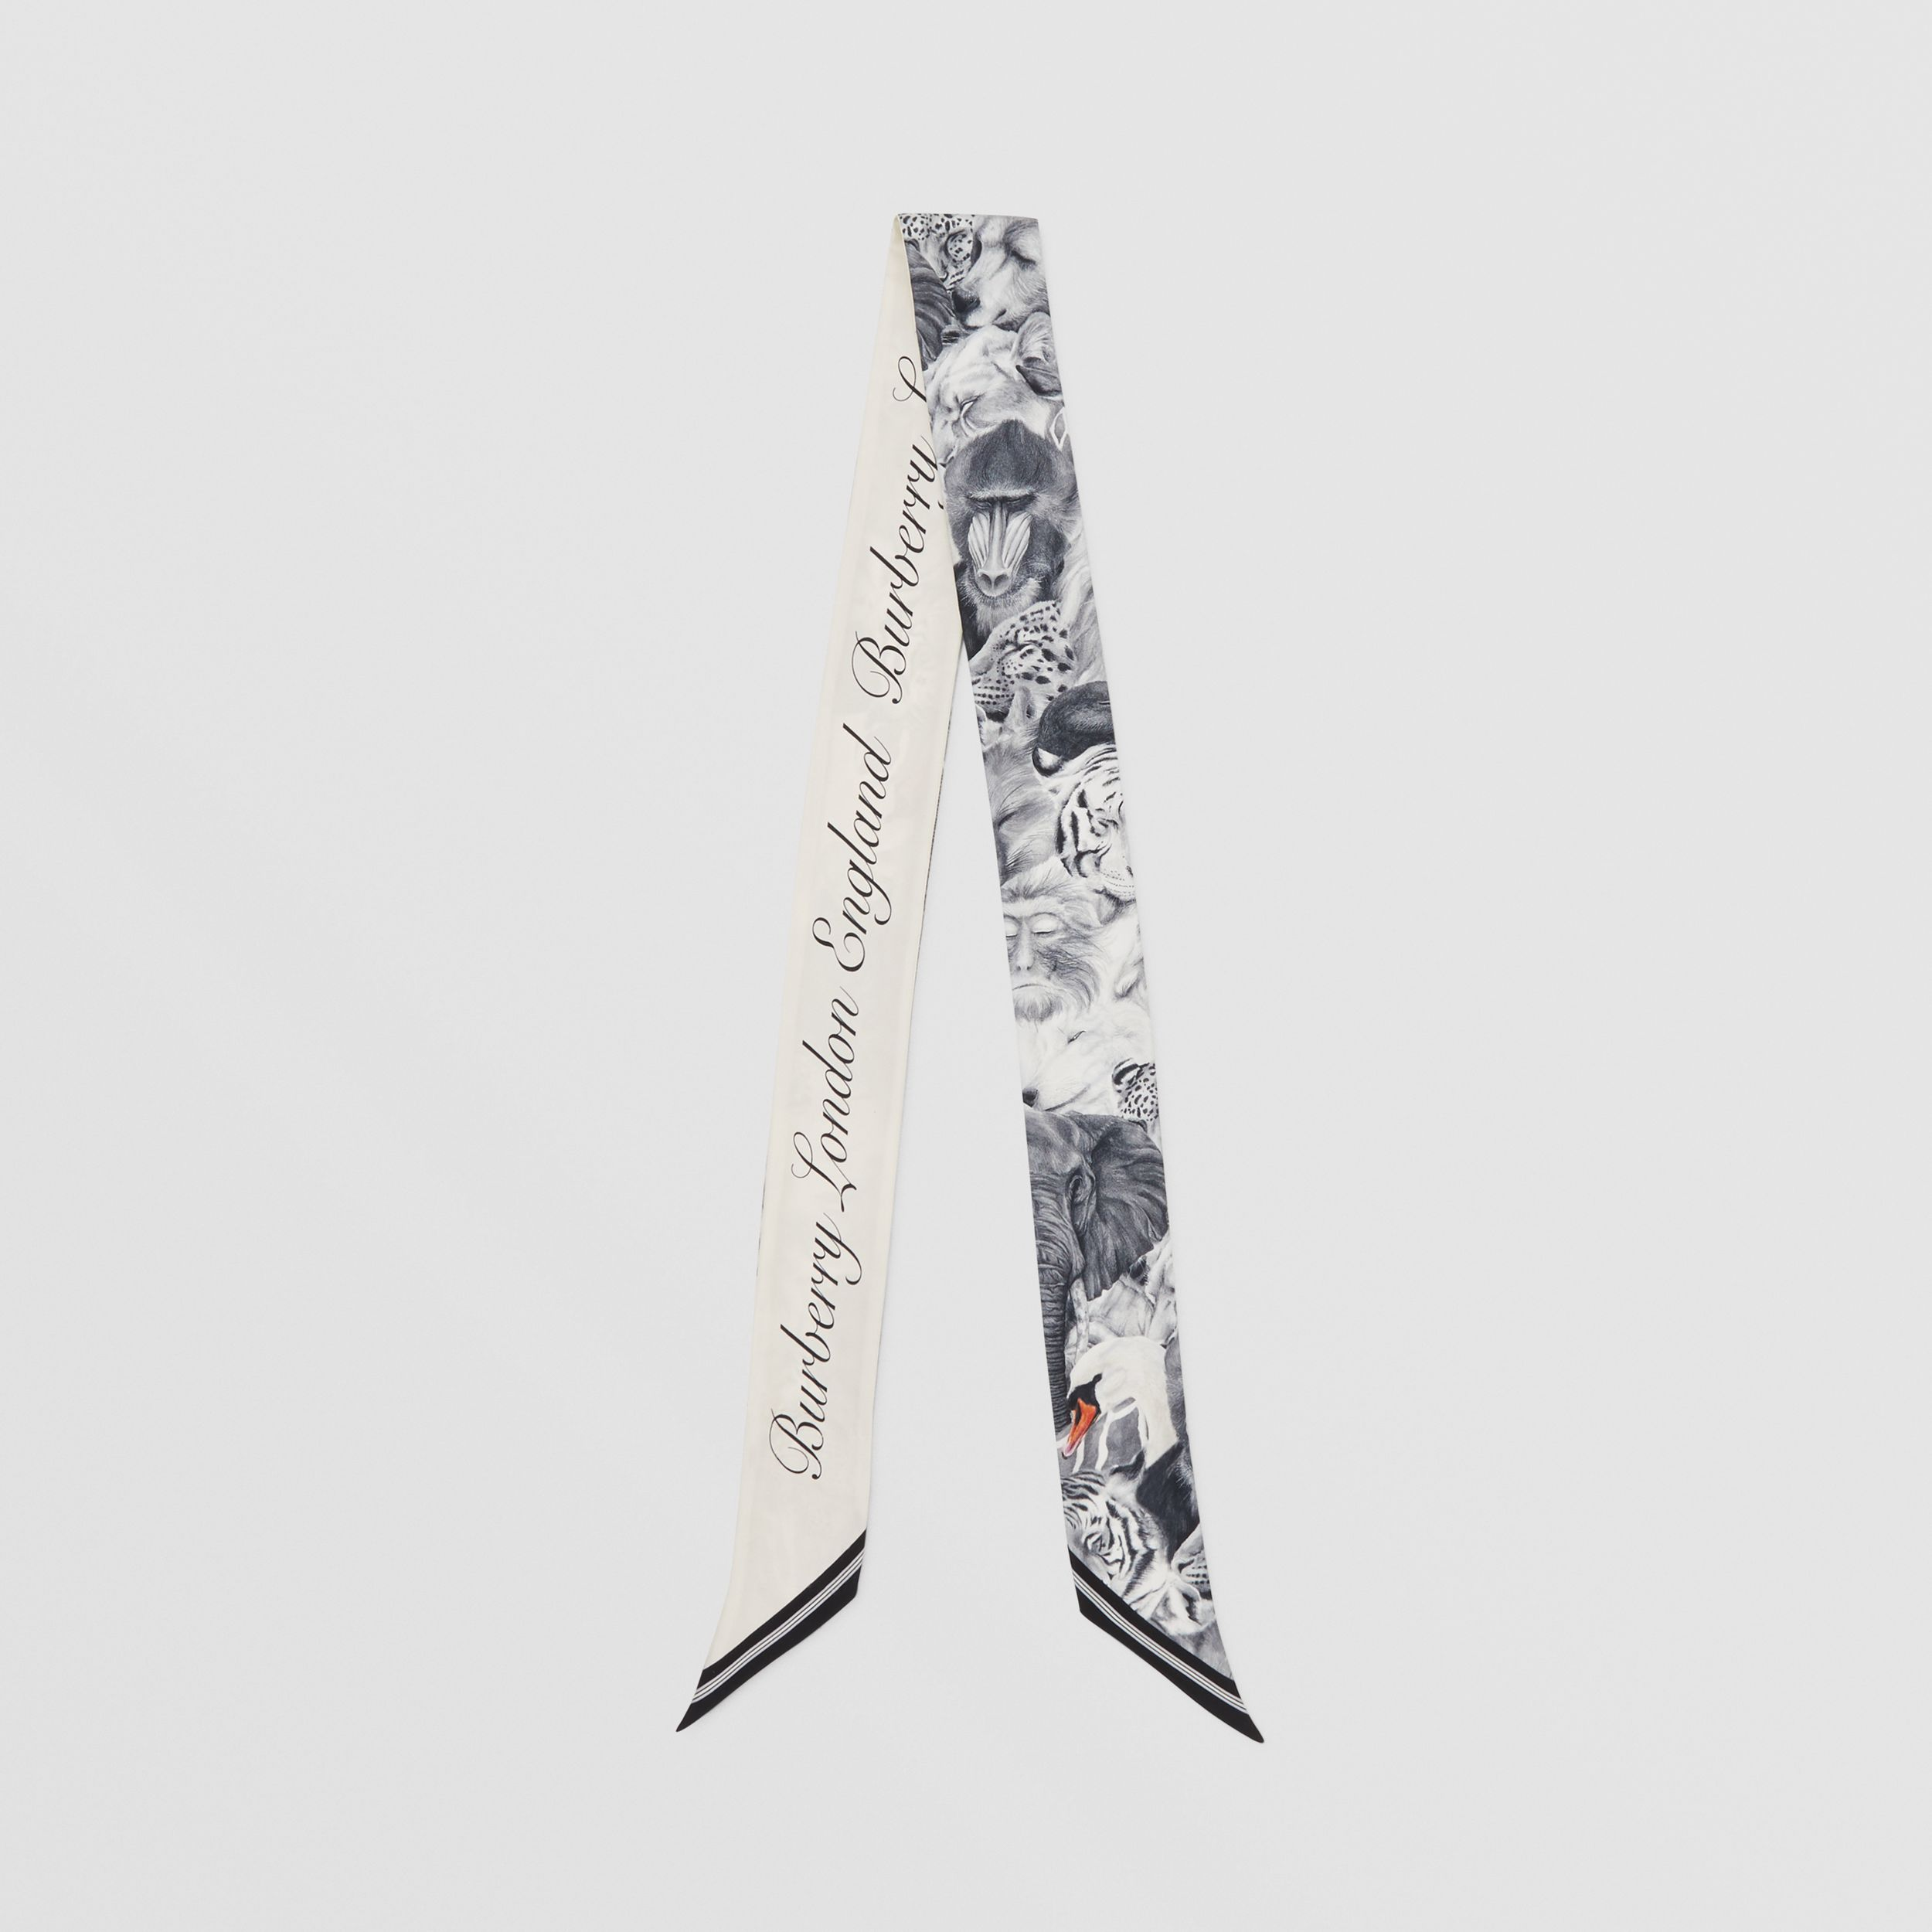 Animalia and Logo Print Silk Skinny Scarf in Vanilla | Burberry - 1